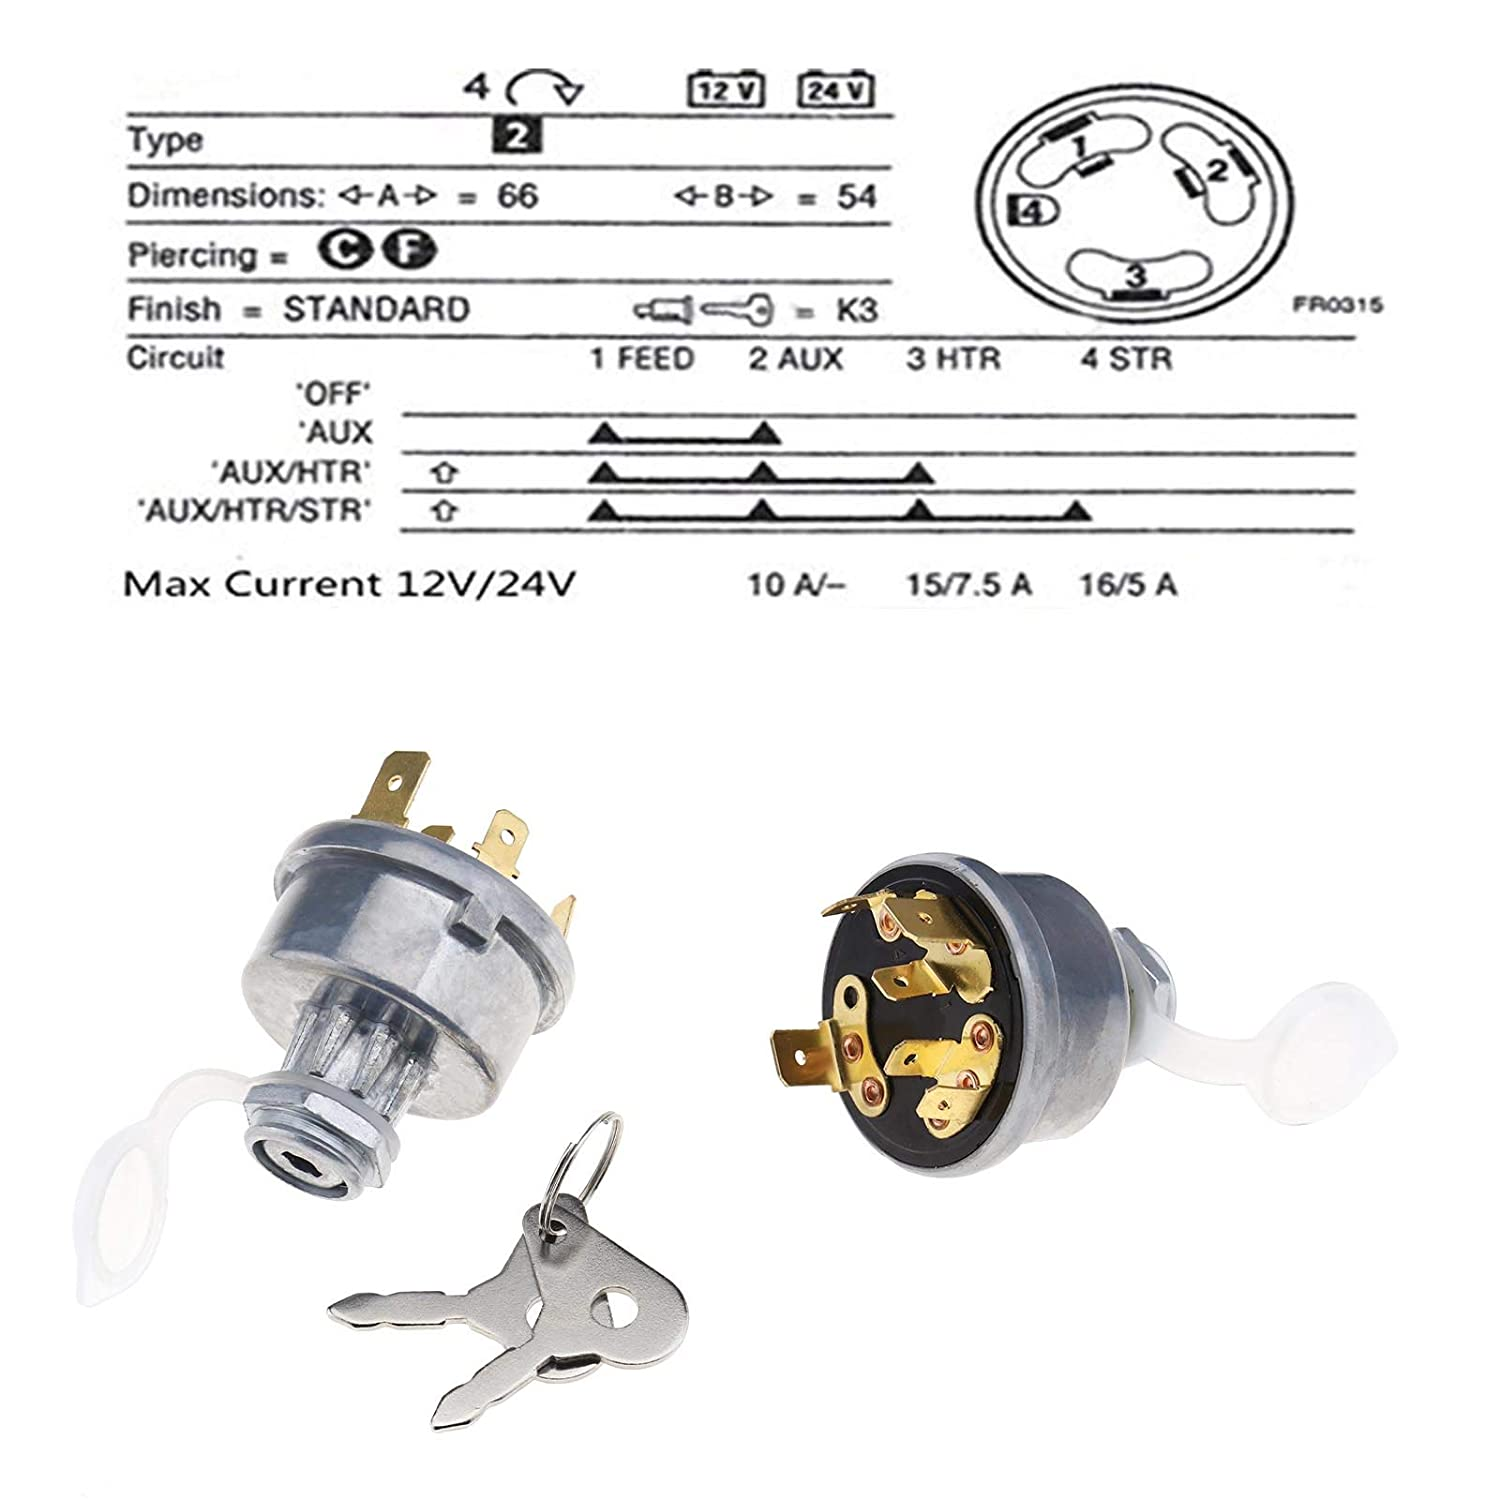 Ignition Lock Starter with 2-Key Set 4-Position 16MM Mounting Hole Compatible with 12239 for David Brown Landin Lucas Massey Ferguson Tractor